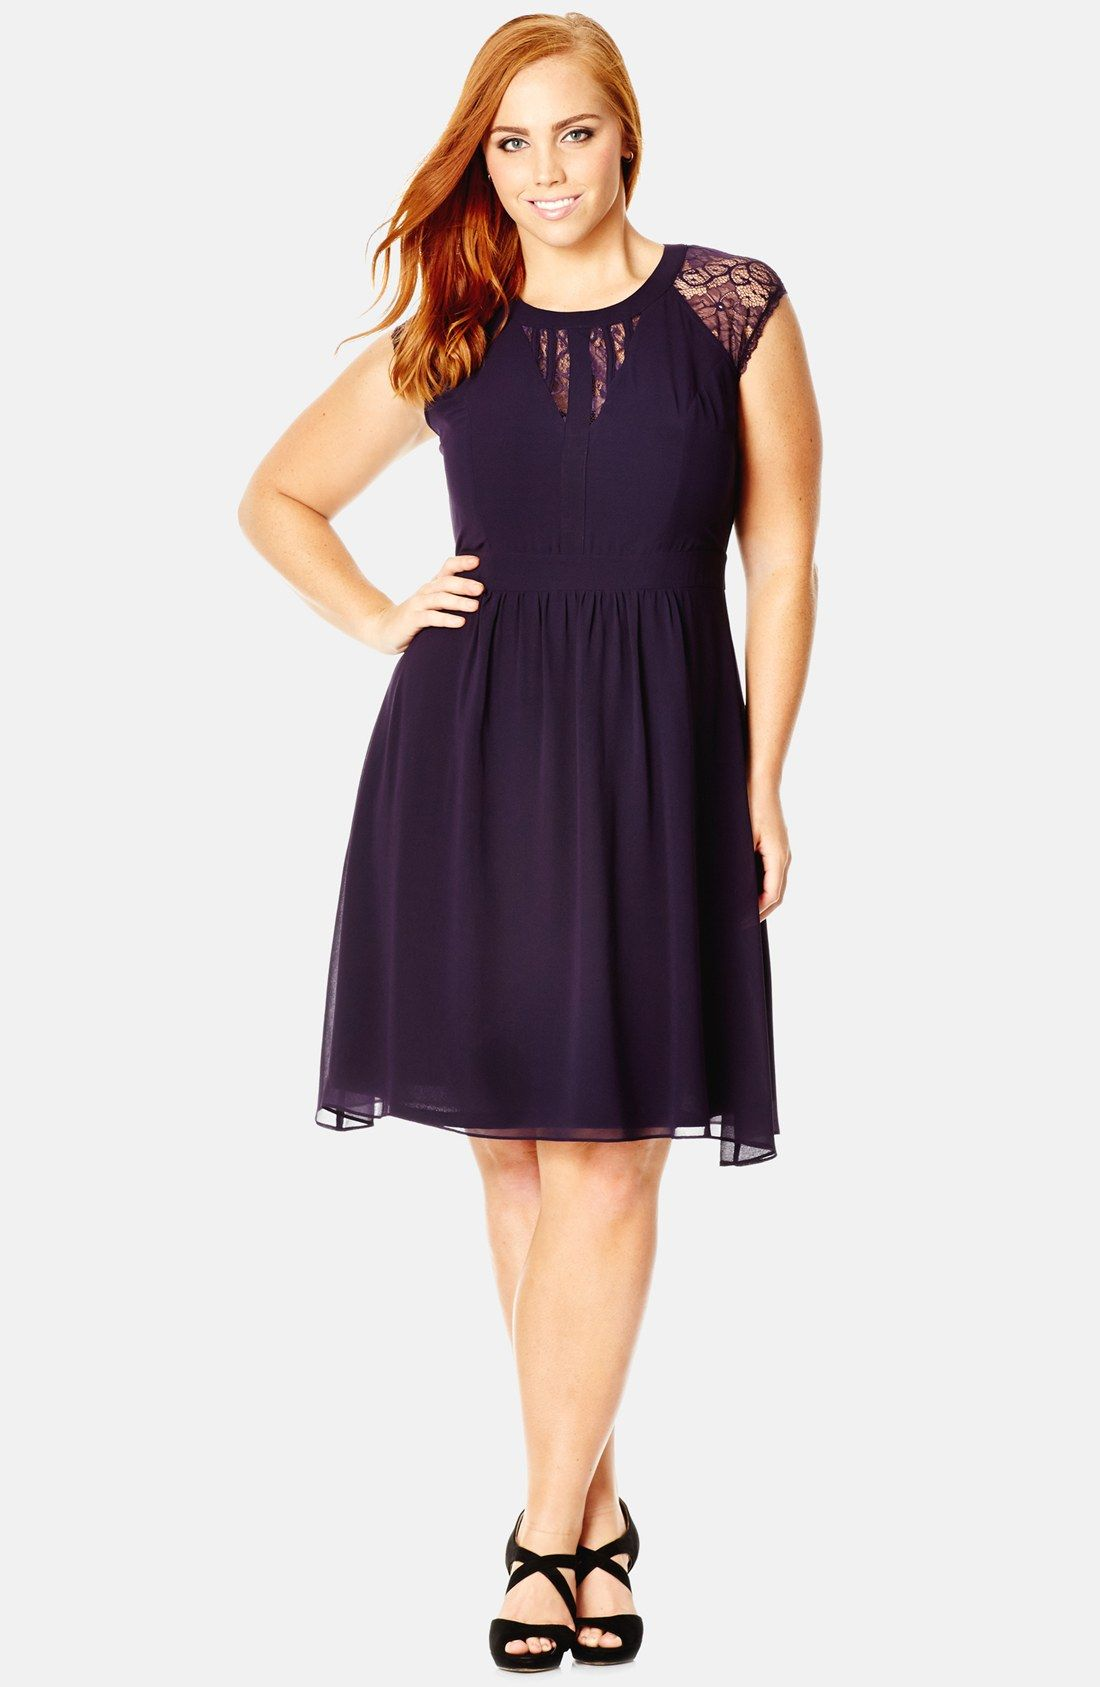 A-Line Plus-Size Cocktail Dresses Party Dresses | Nordstrom ...